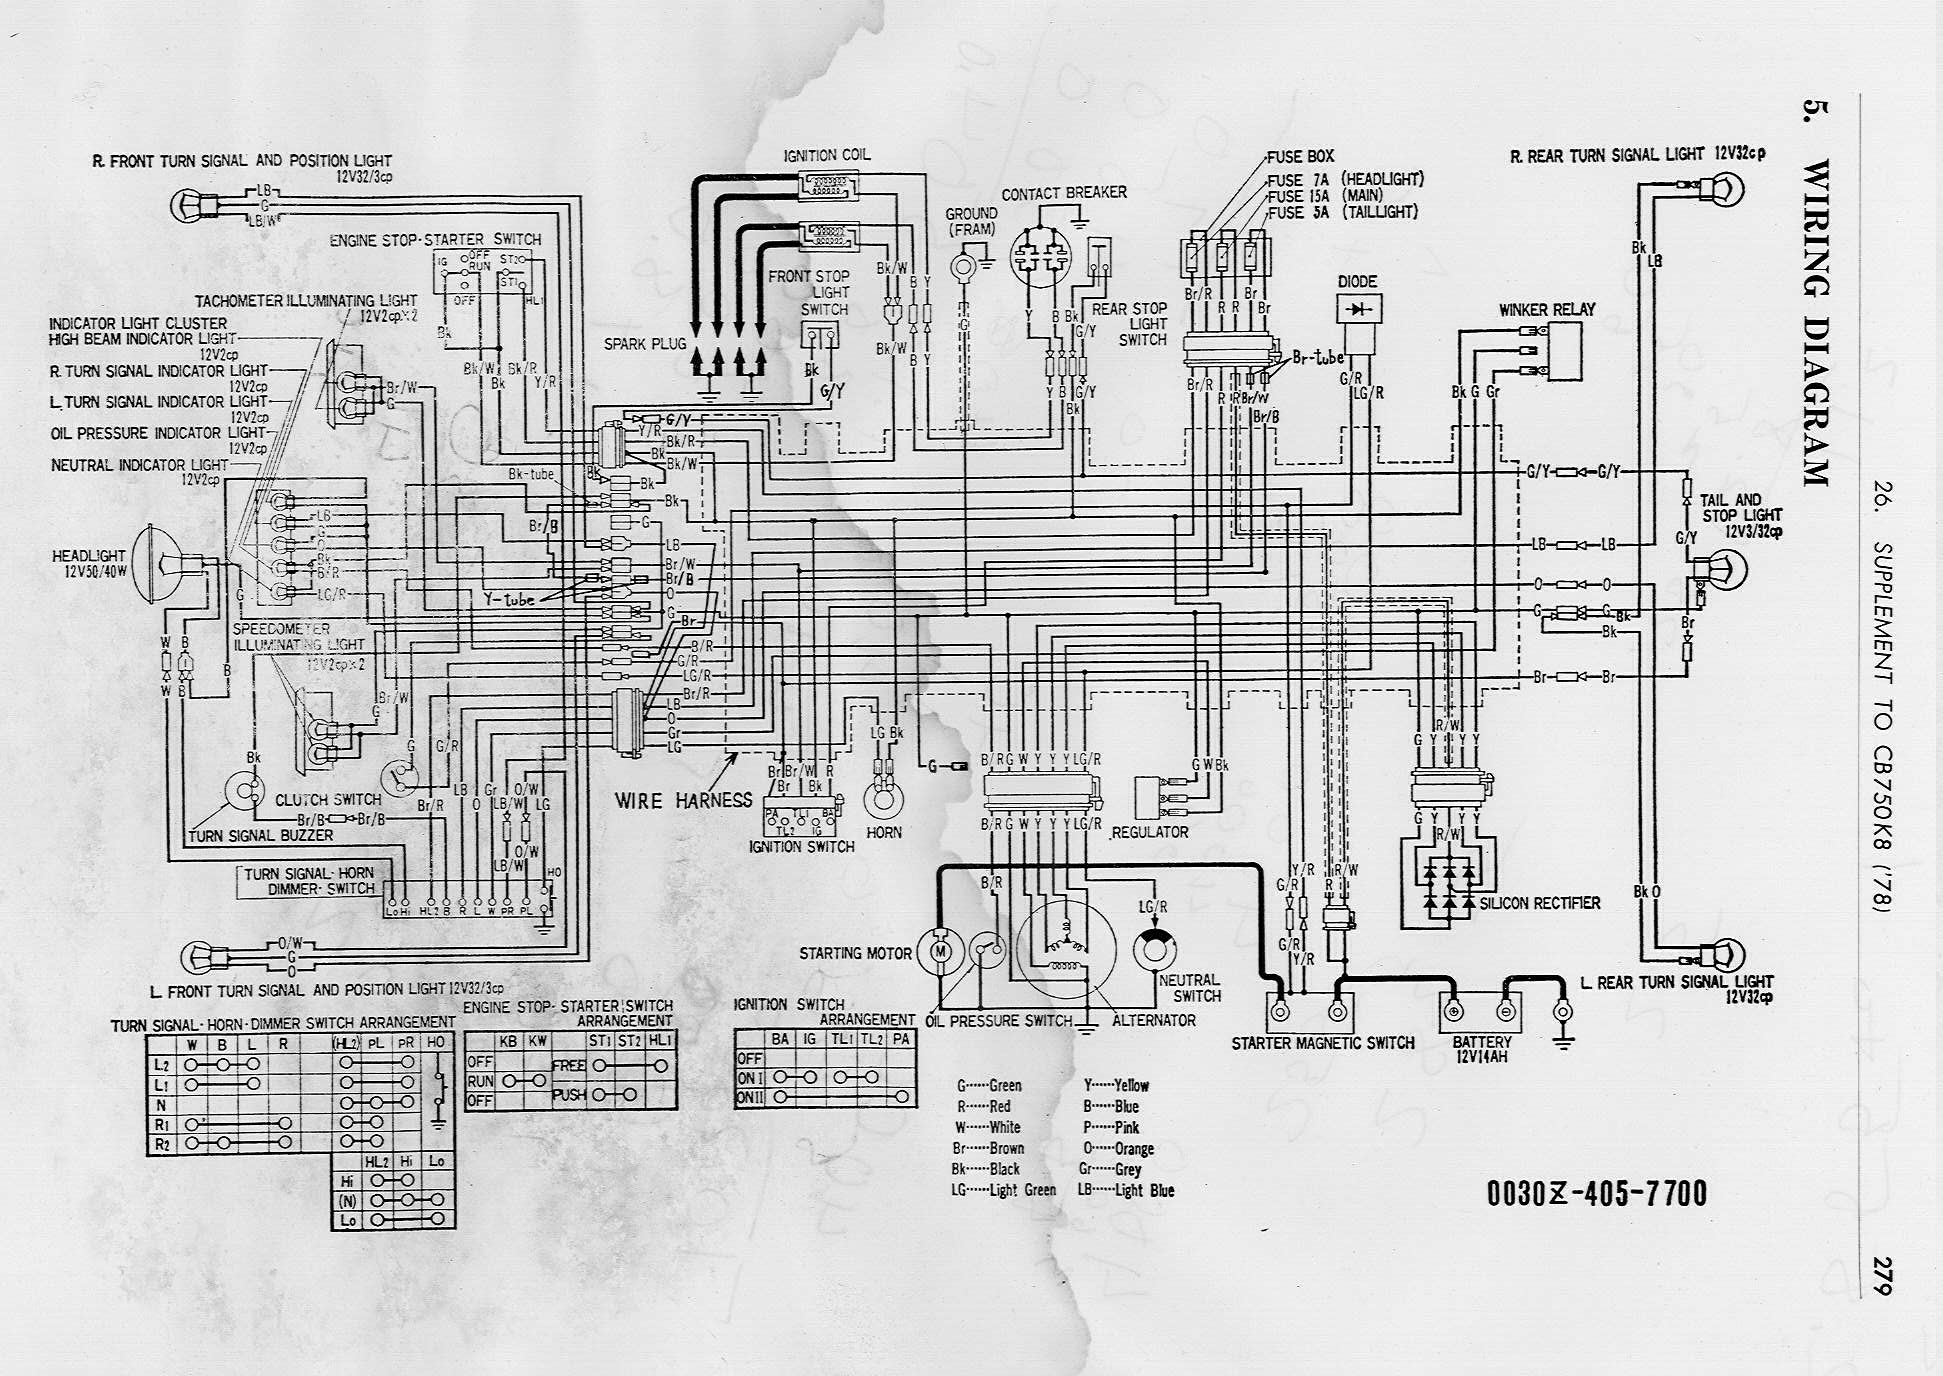 Honda Atc250sx Wiring Diagram Page 4 And Schematics 1985 Big Red Atc 250sx Imageresizertool Com 200m